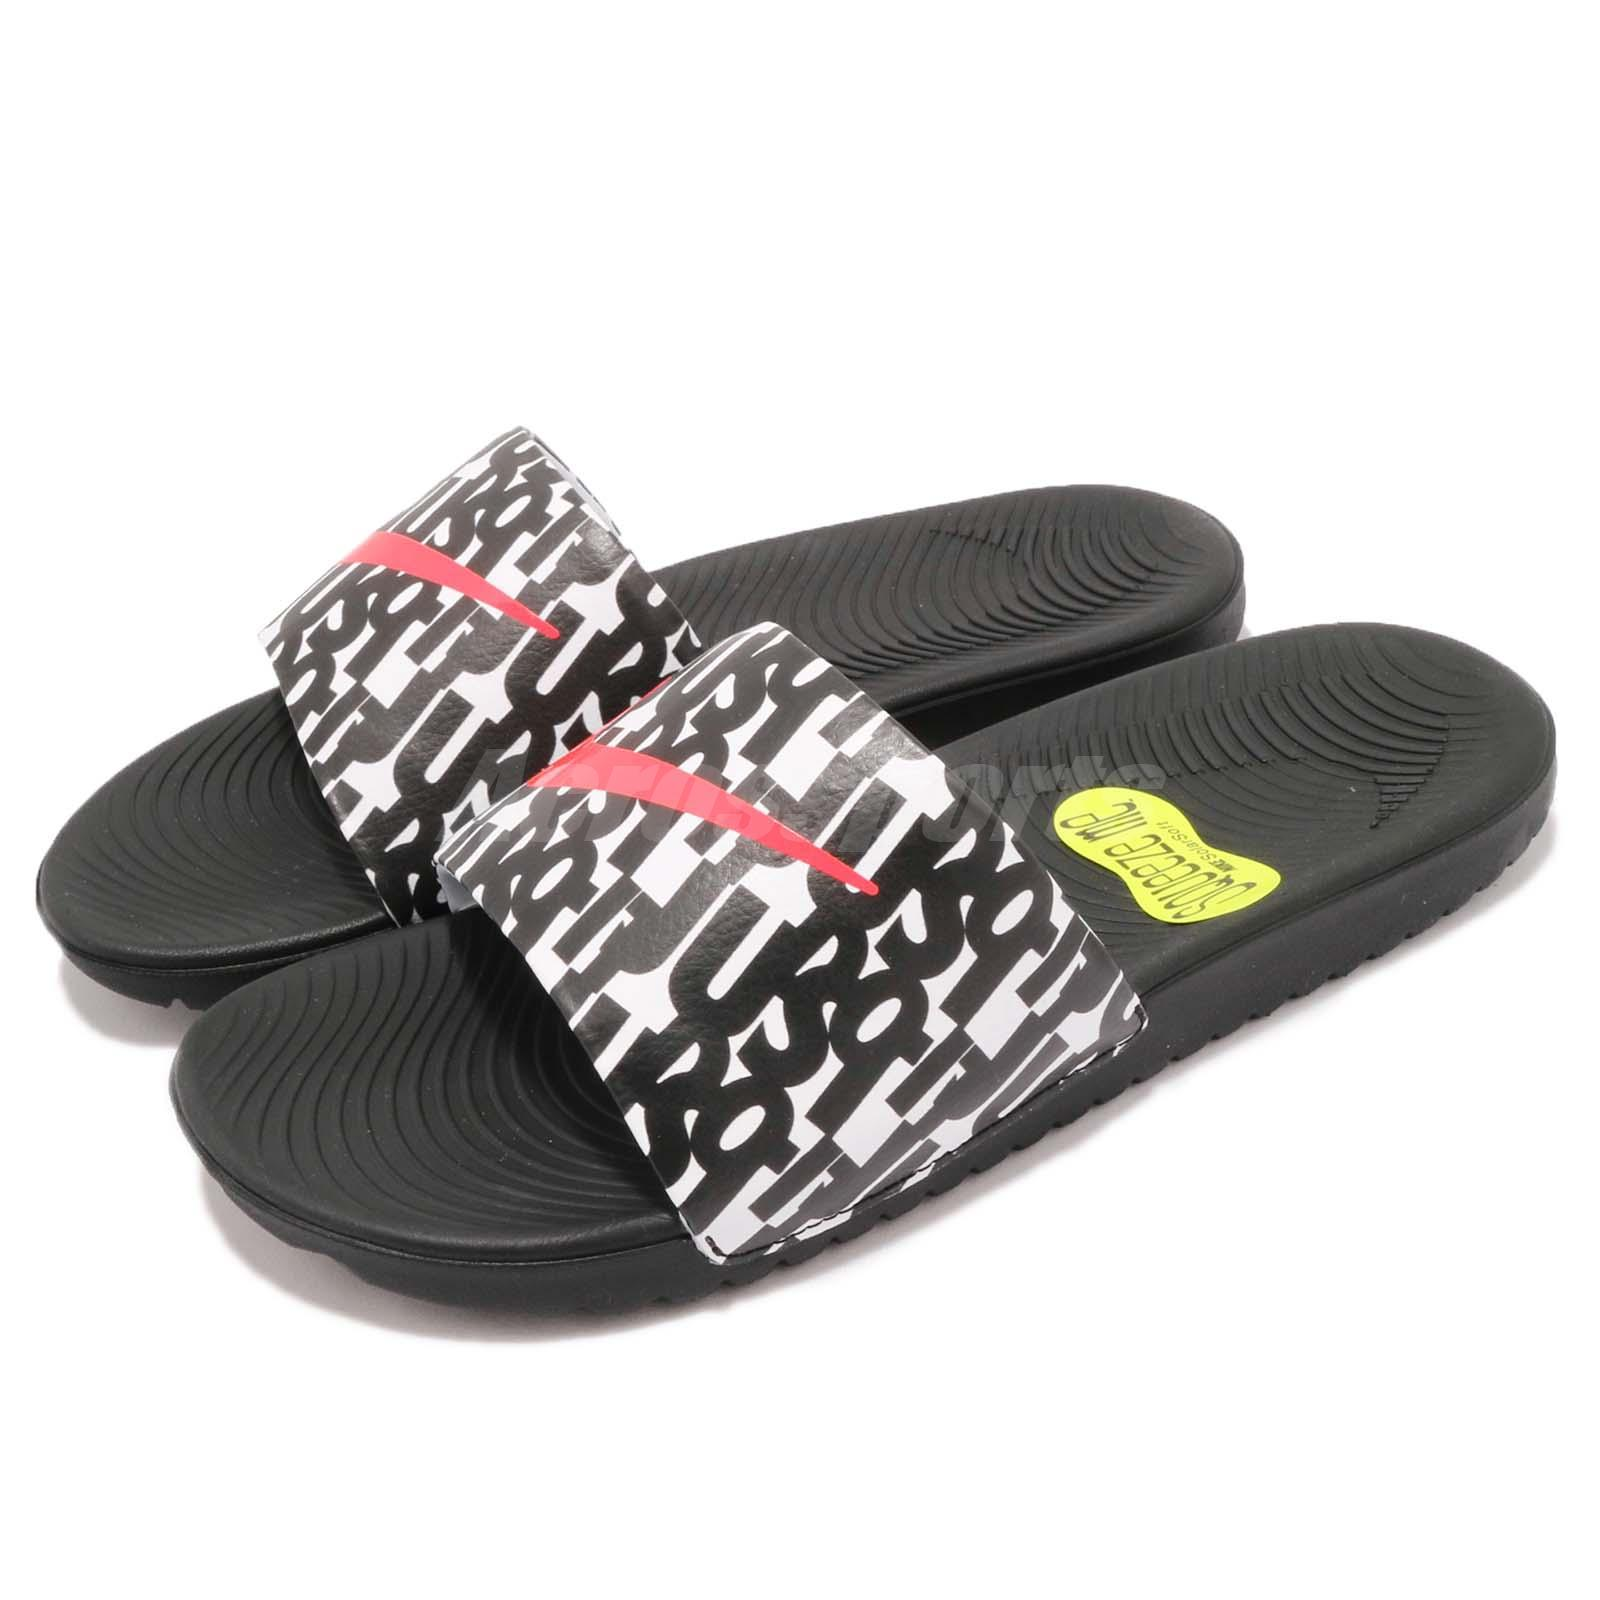 399581ccb Details about Nike Kawa Slide Print GS PS Just Do It Black Kid Youth Sports  Sandal 819358-007